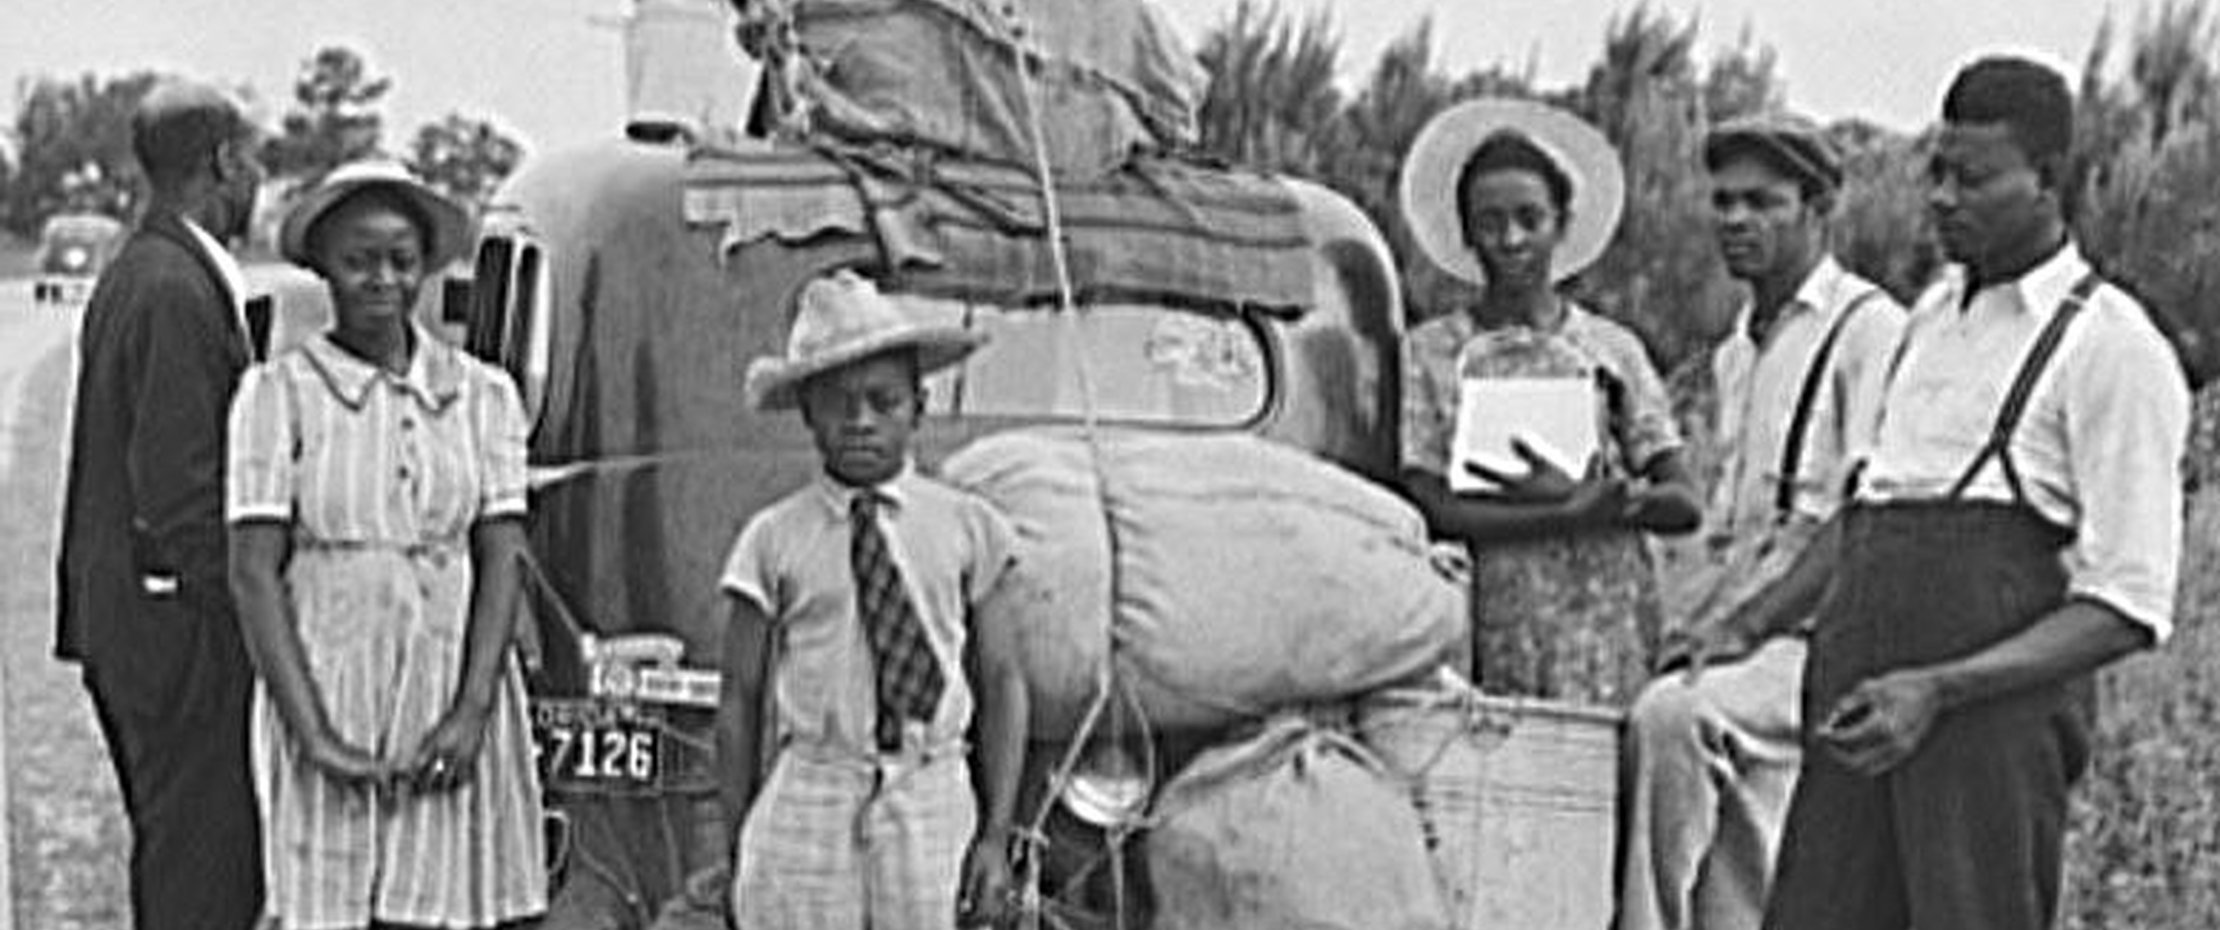 African American family in front of automobile with luggage piled on top